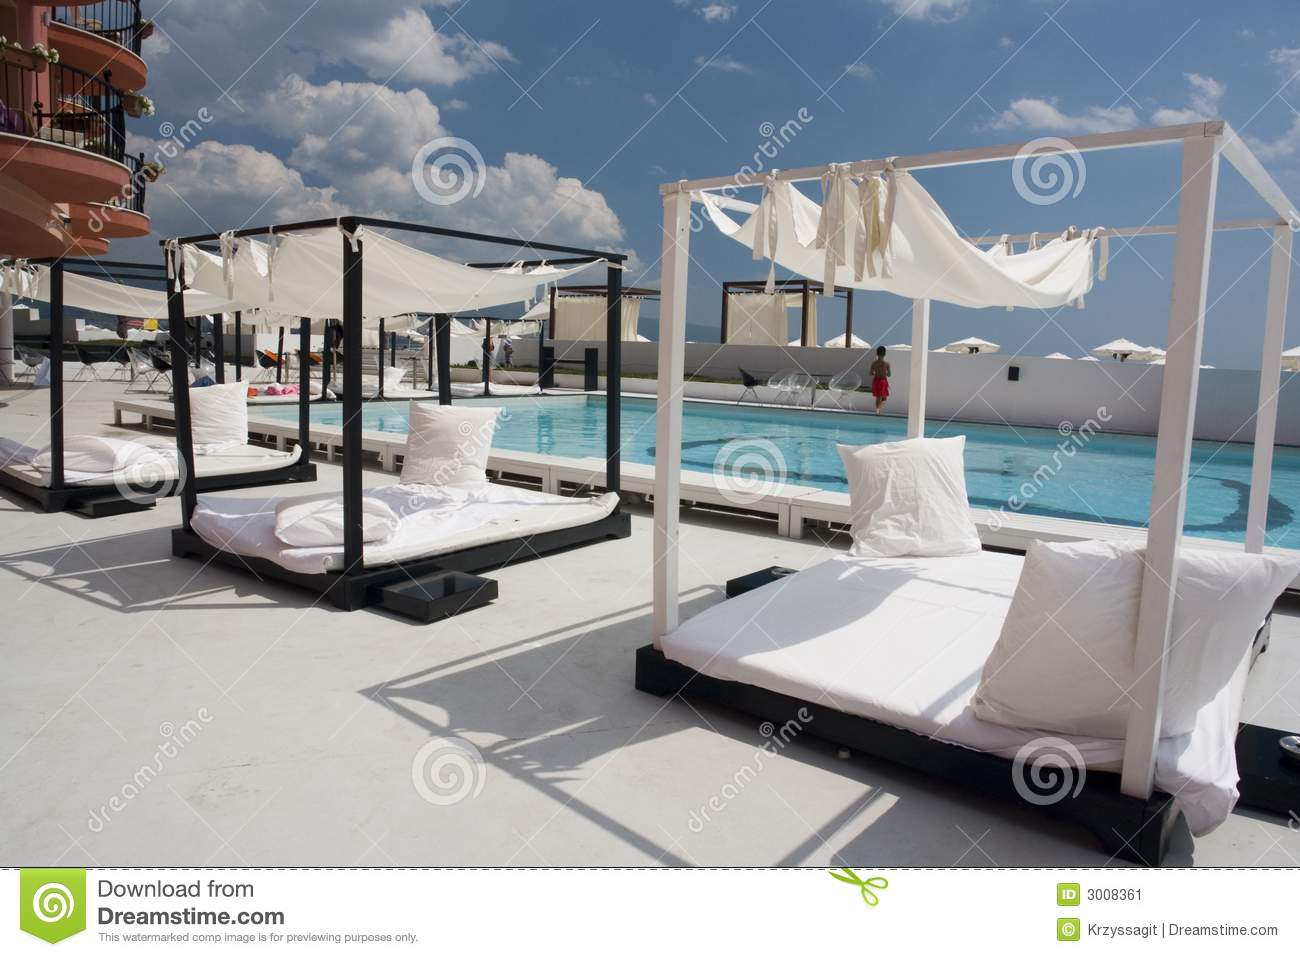 Outdoor Beds Stock Image Image 3008361